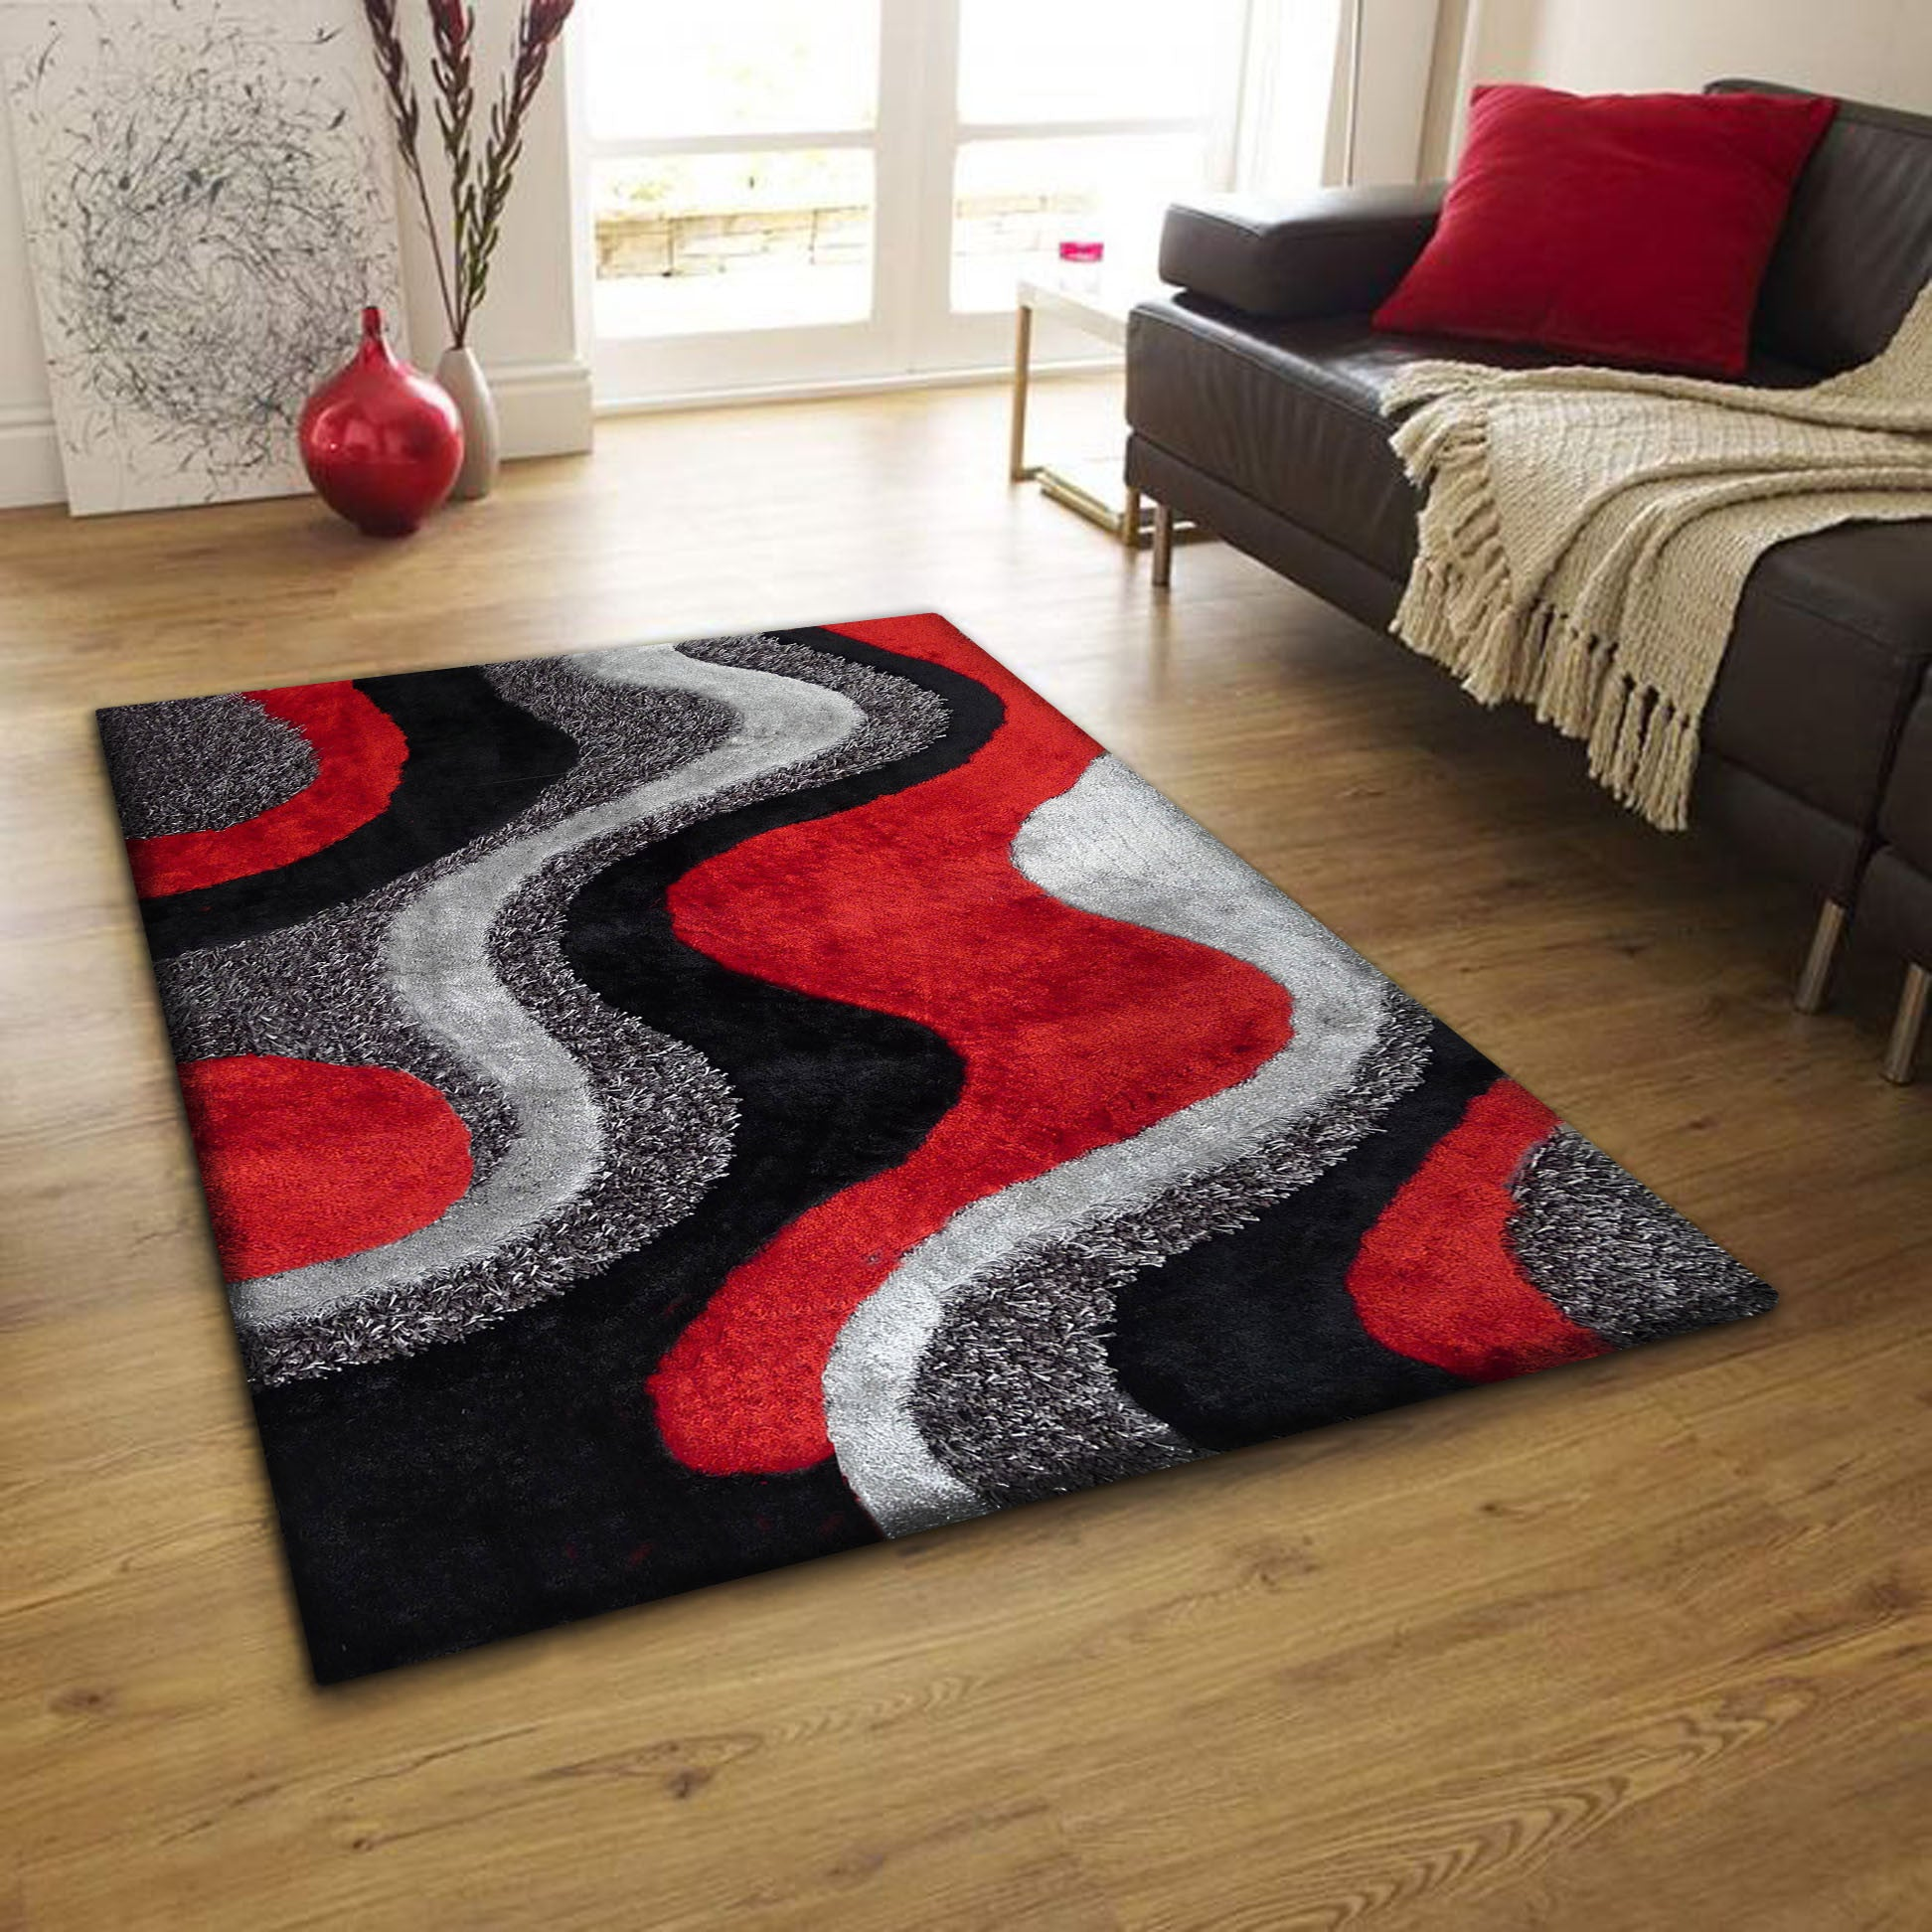 Black Grey With Red Shag Area Rug By Rugaddiction Com Rug Addiction